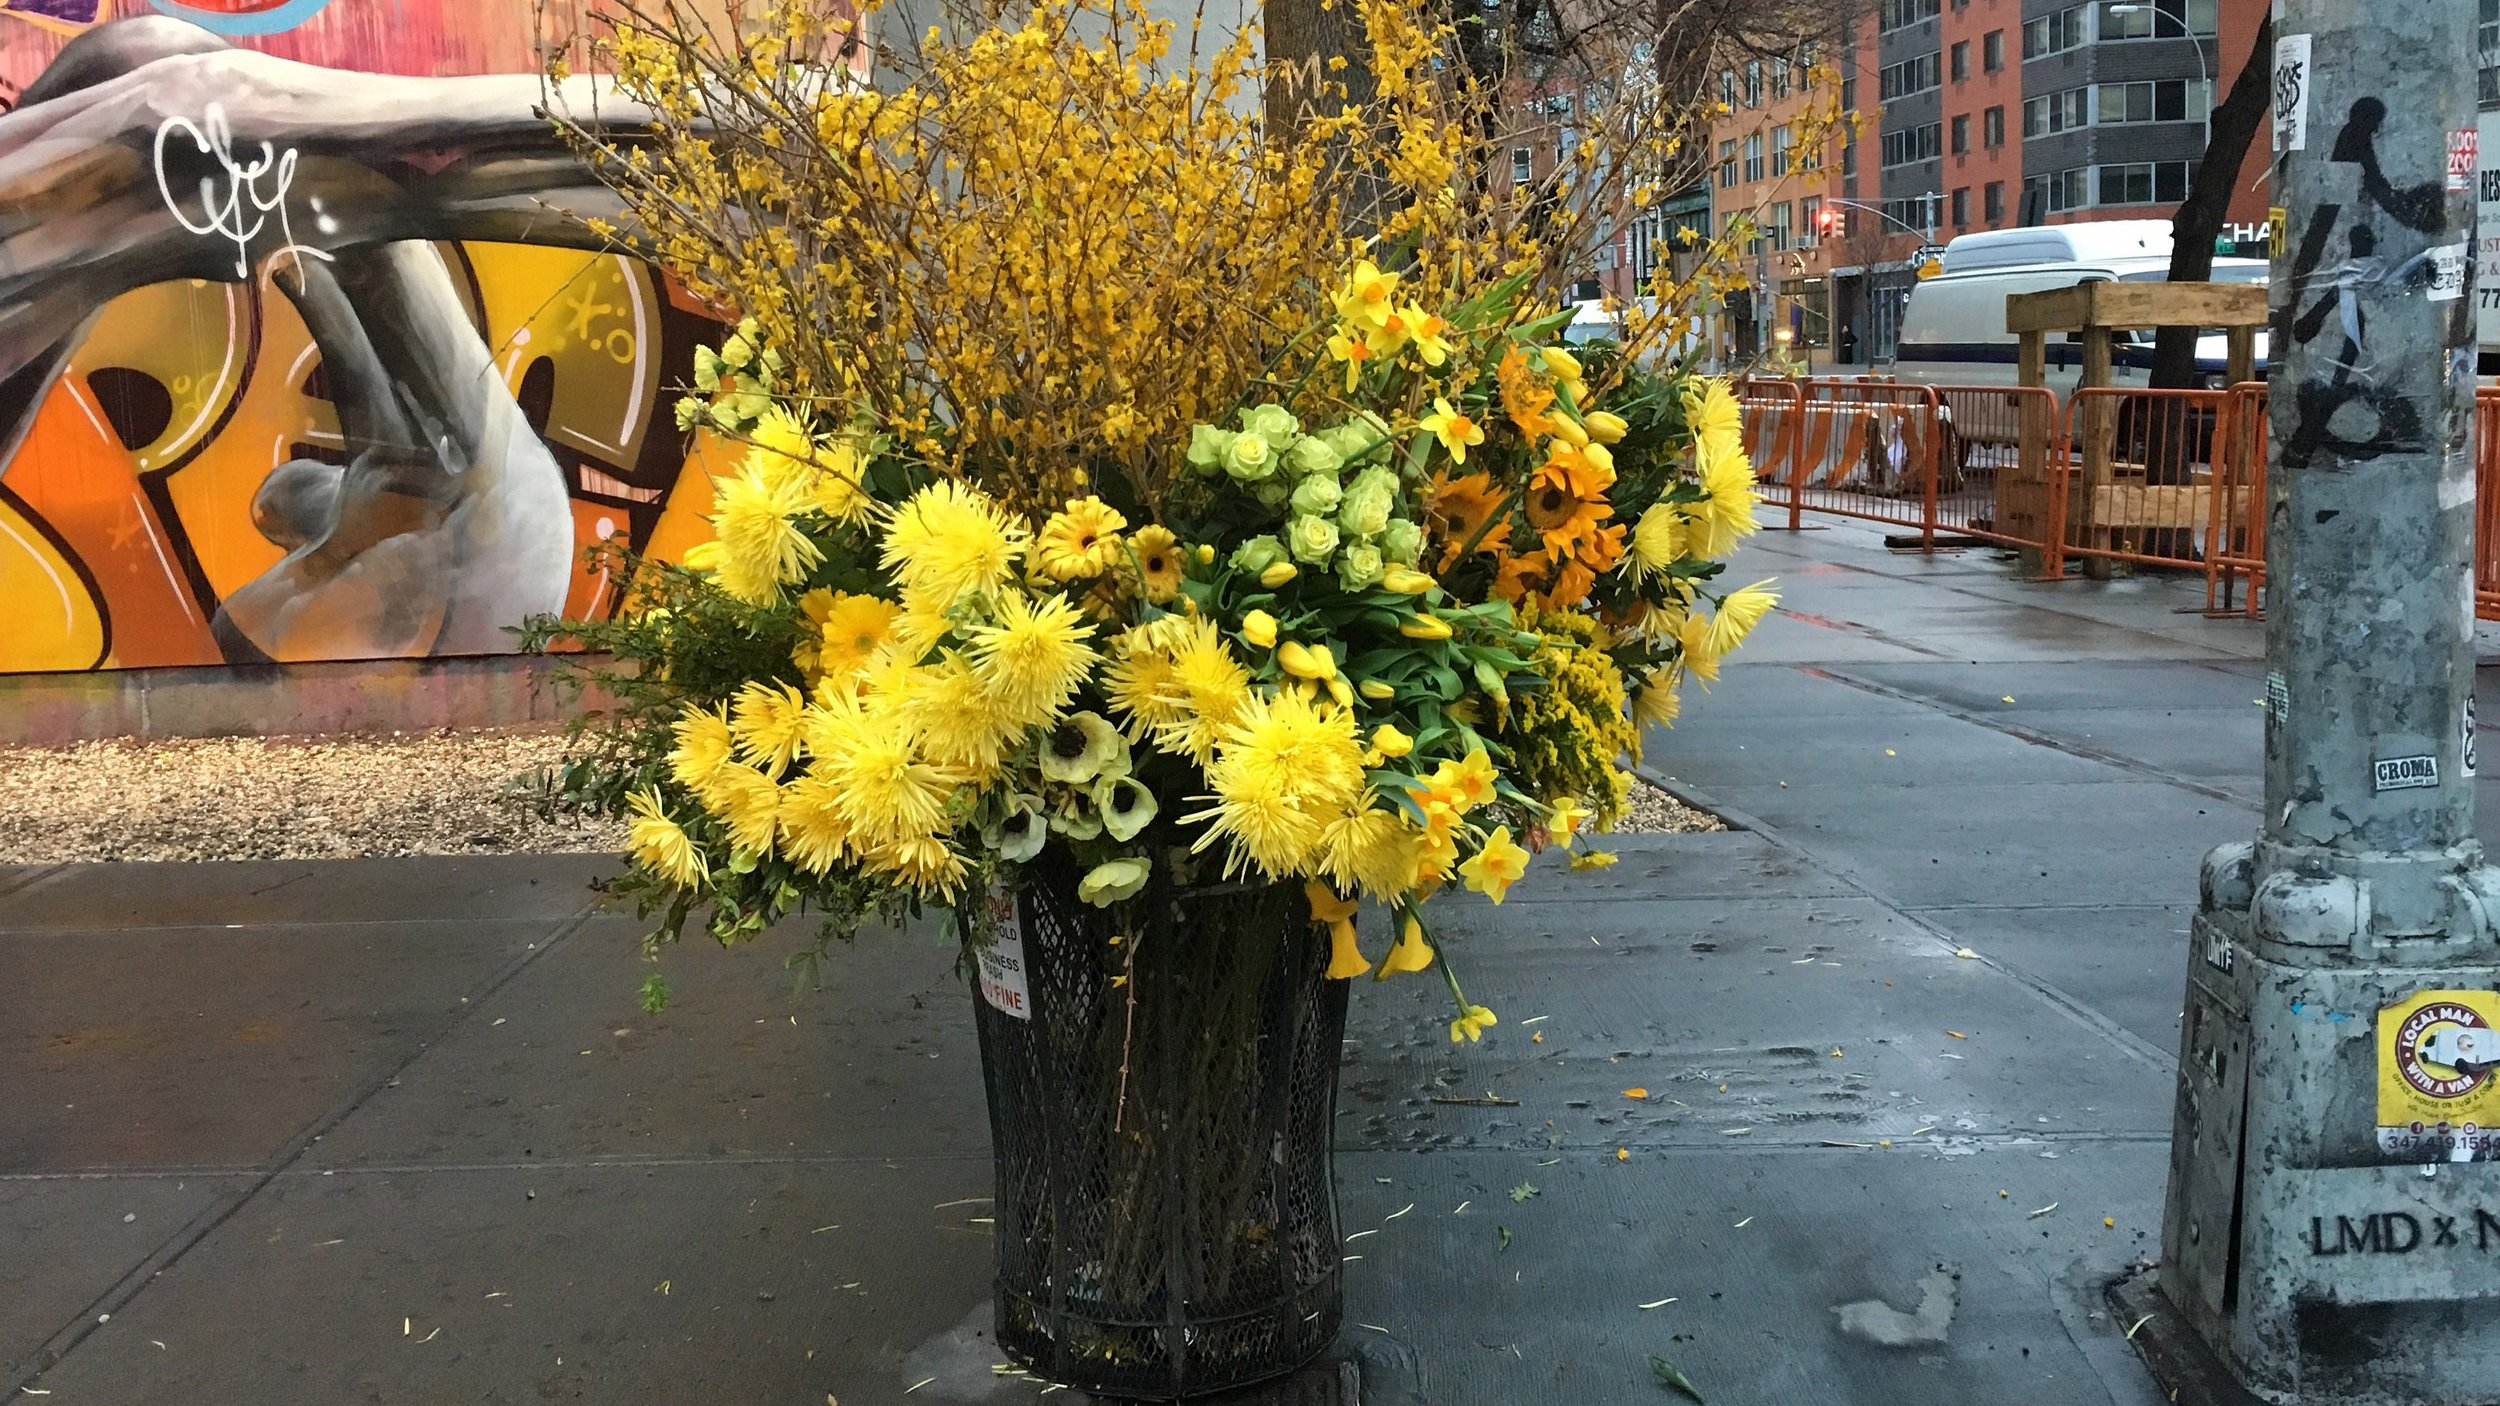 Trash bins overflow with sumptuous blooms.